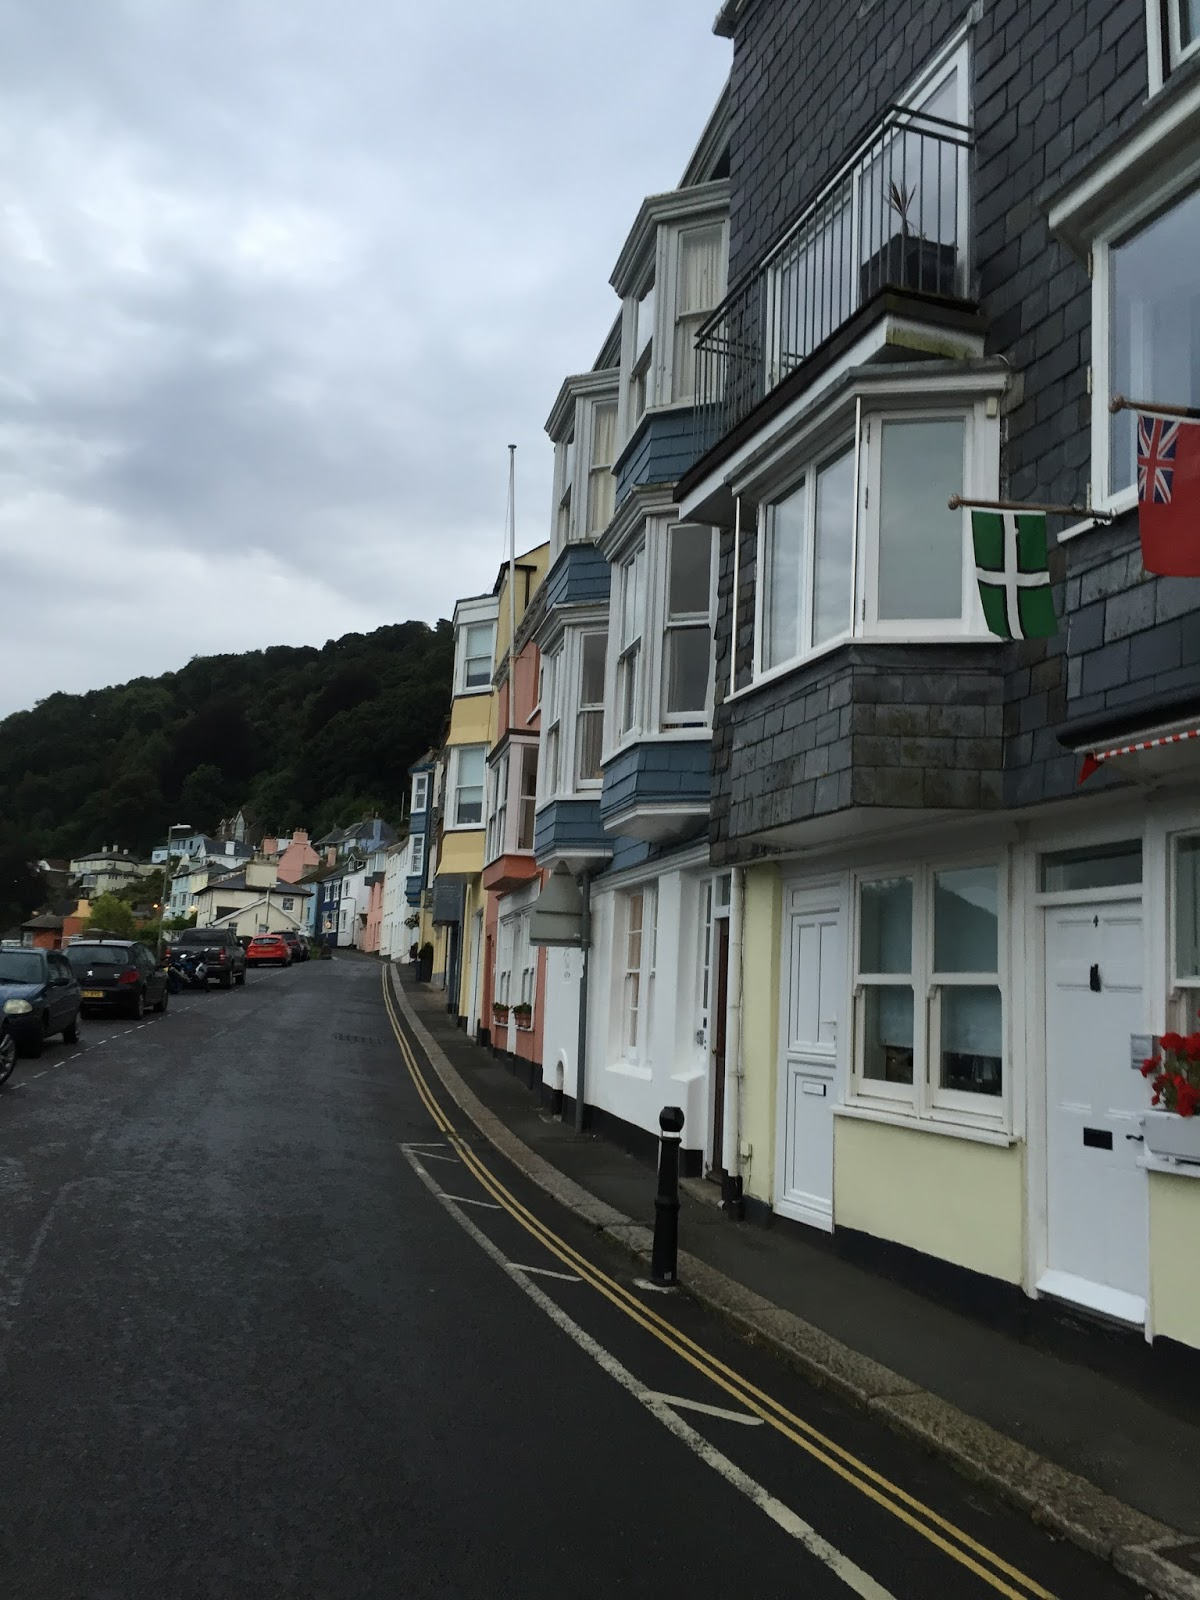 Kingswear pastel houses